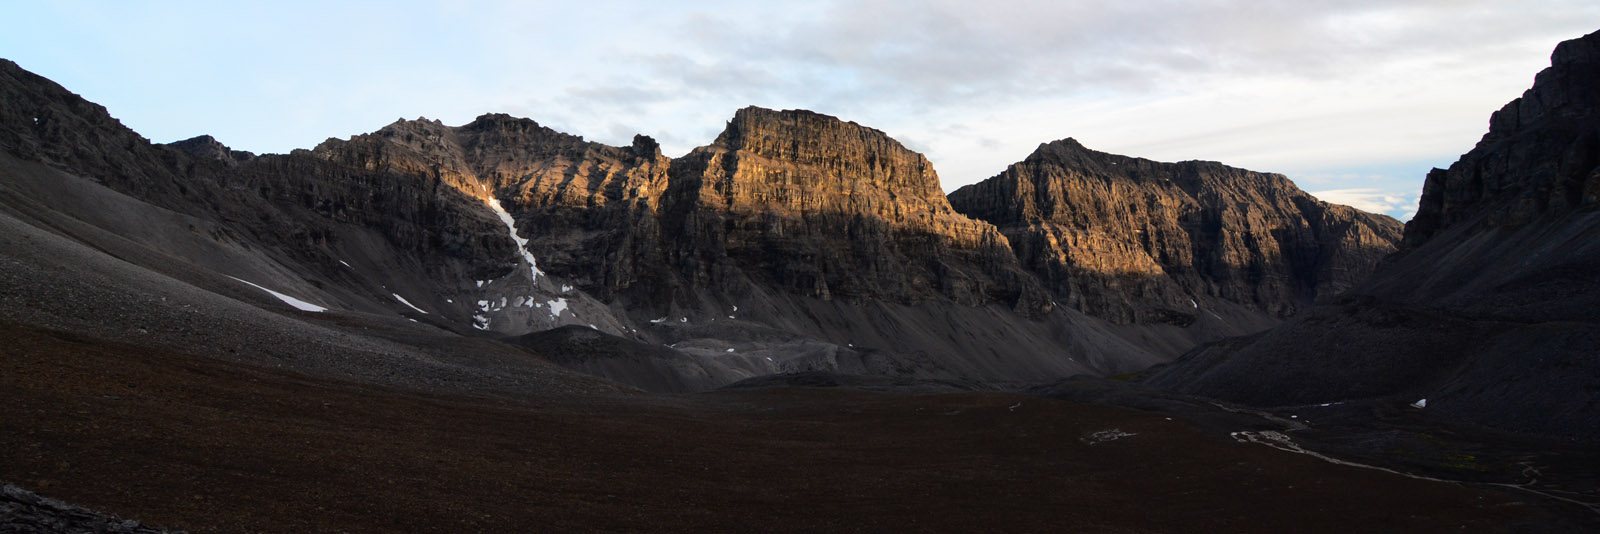 The steep limestone cliffs of Limestack Mountain, in Gates of the Arctic National Park and Preserve